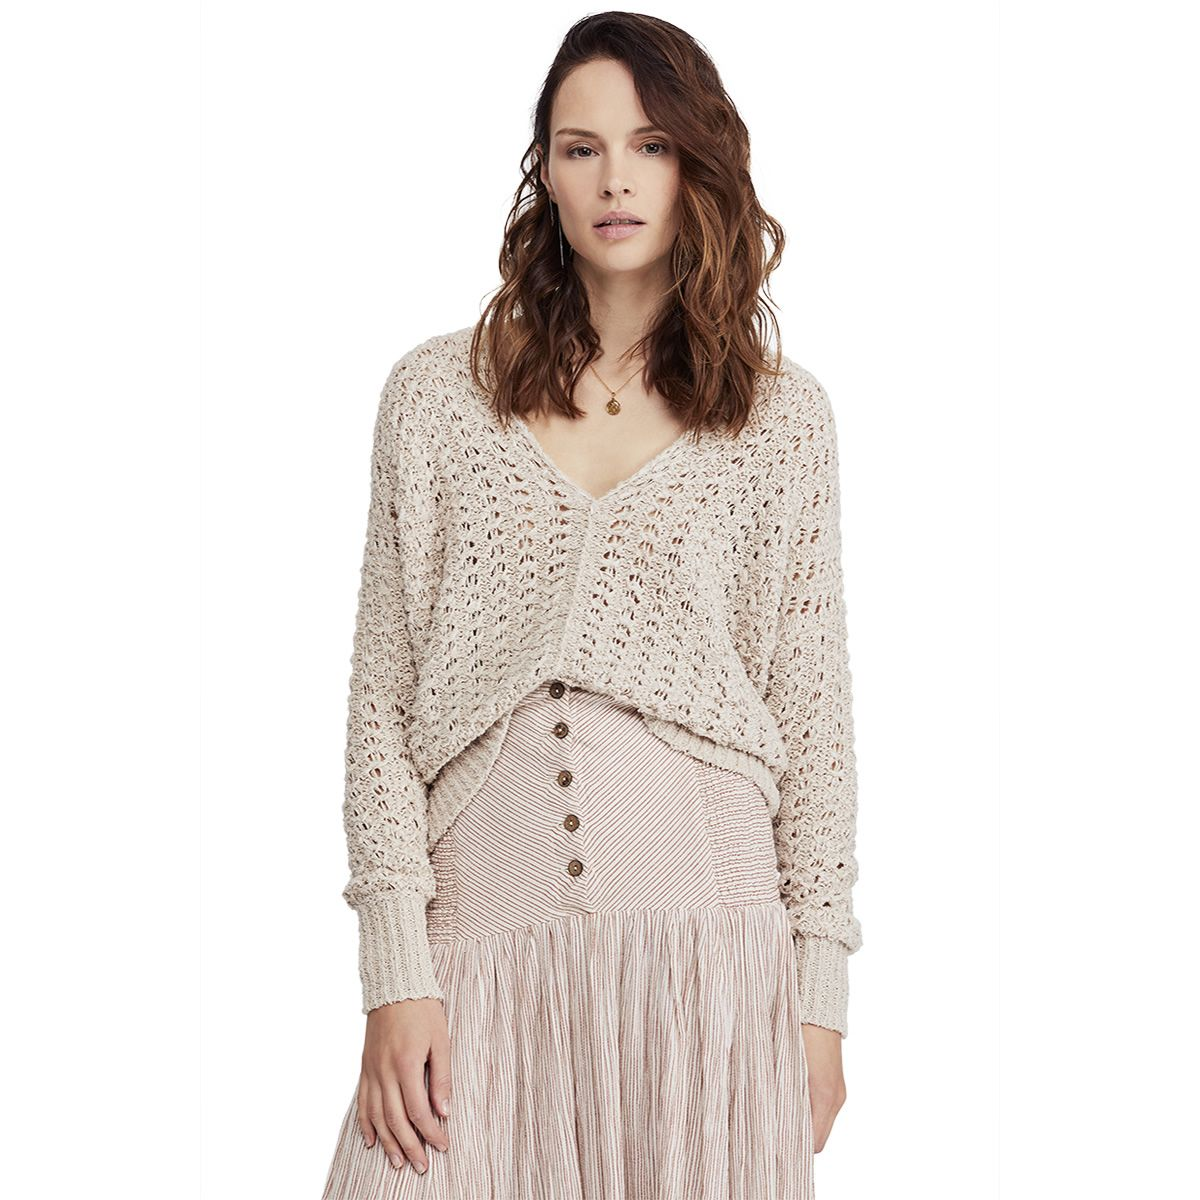 af9236571a29 Free People Clothing - Womens Apparel - Macy s